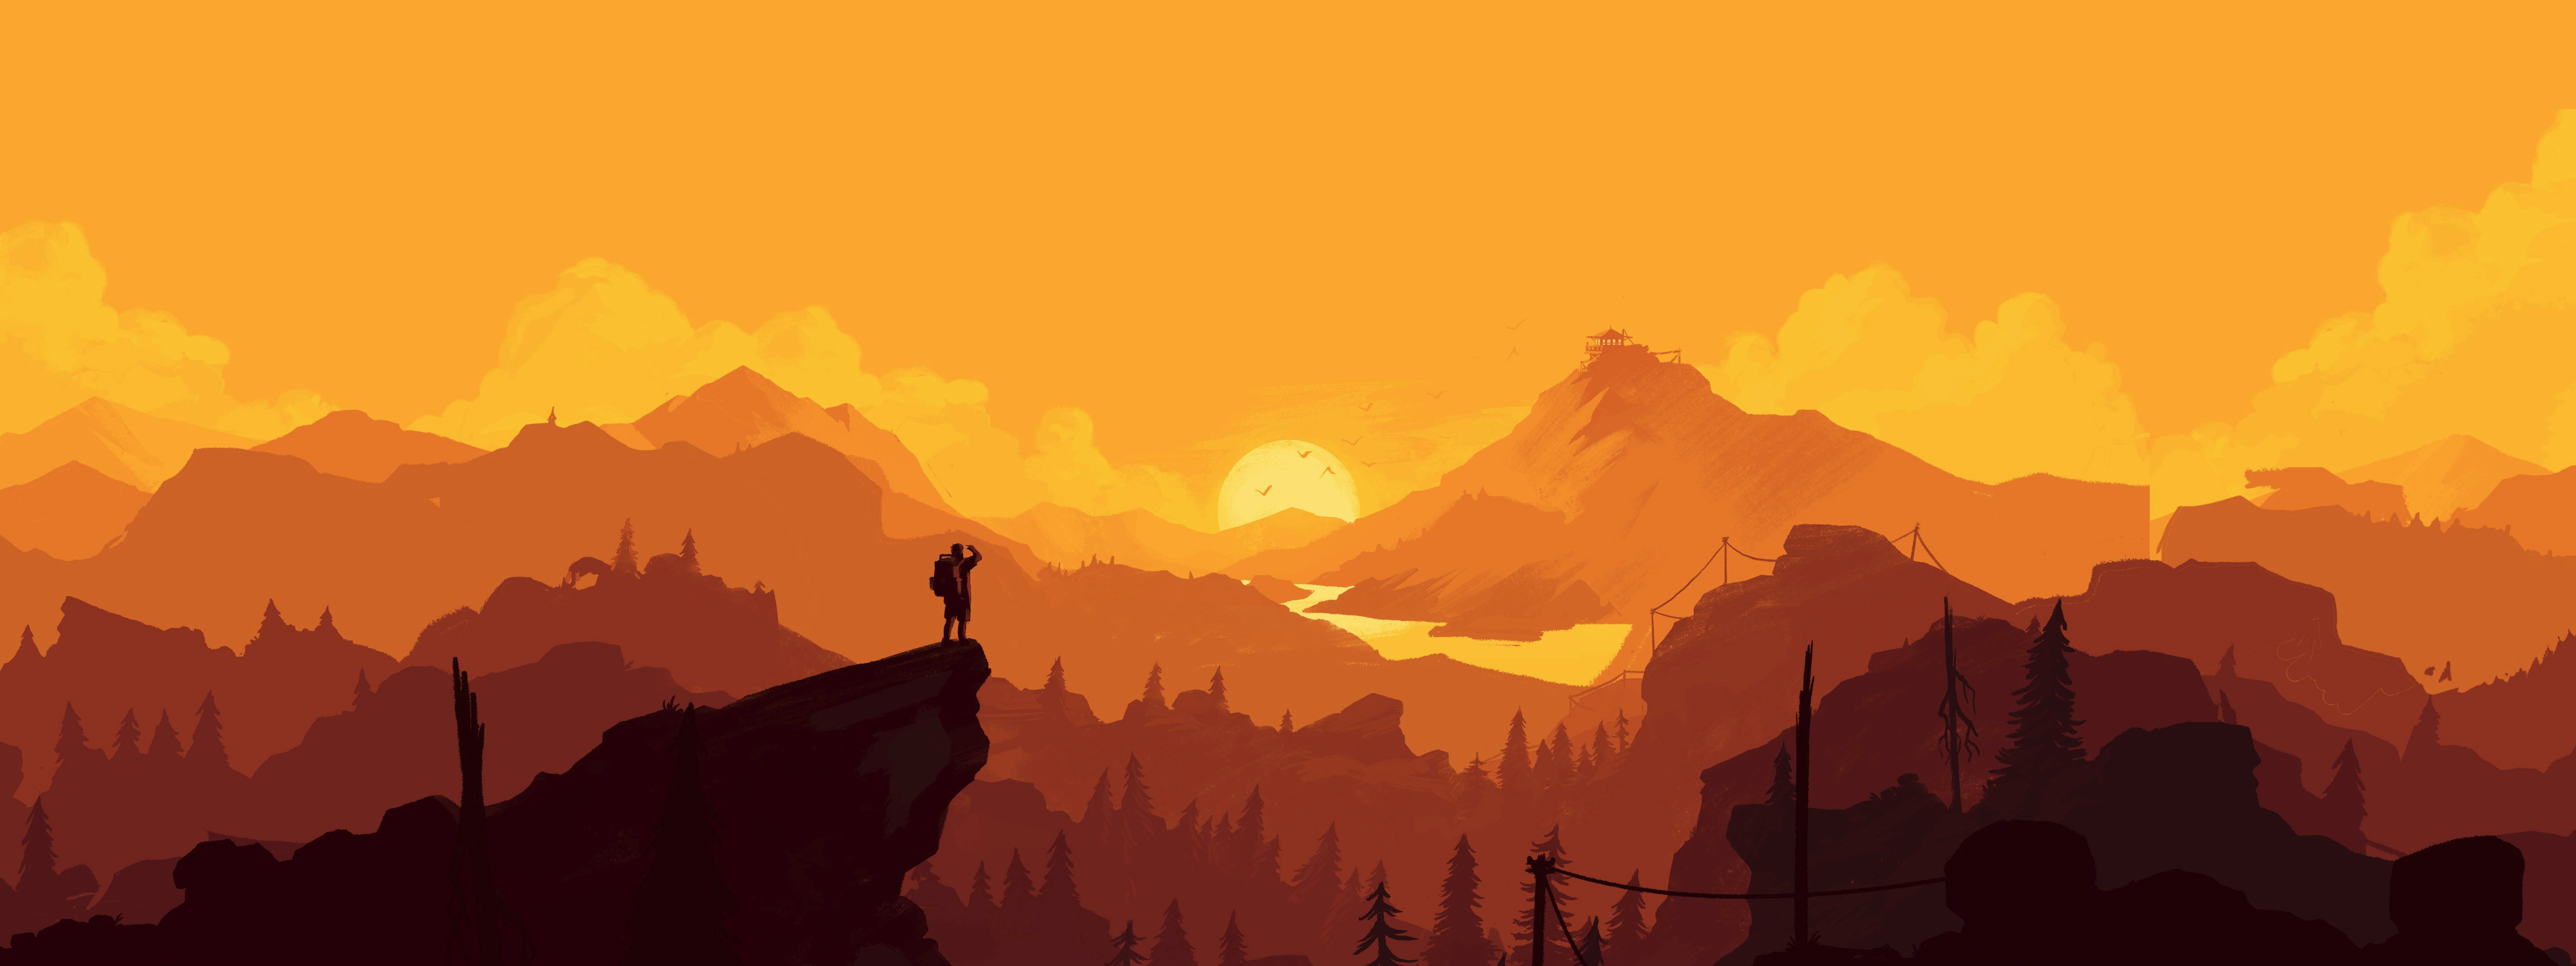 Firewatch [5760x2160] Firewatch, Wallpaper for facebook